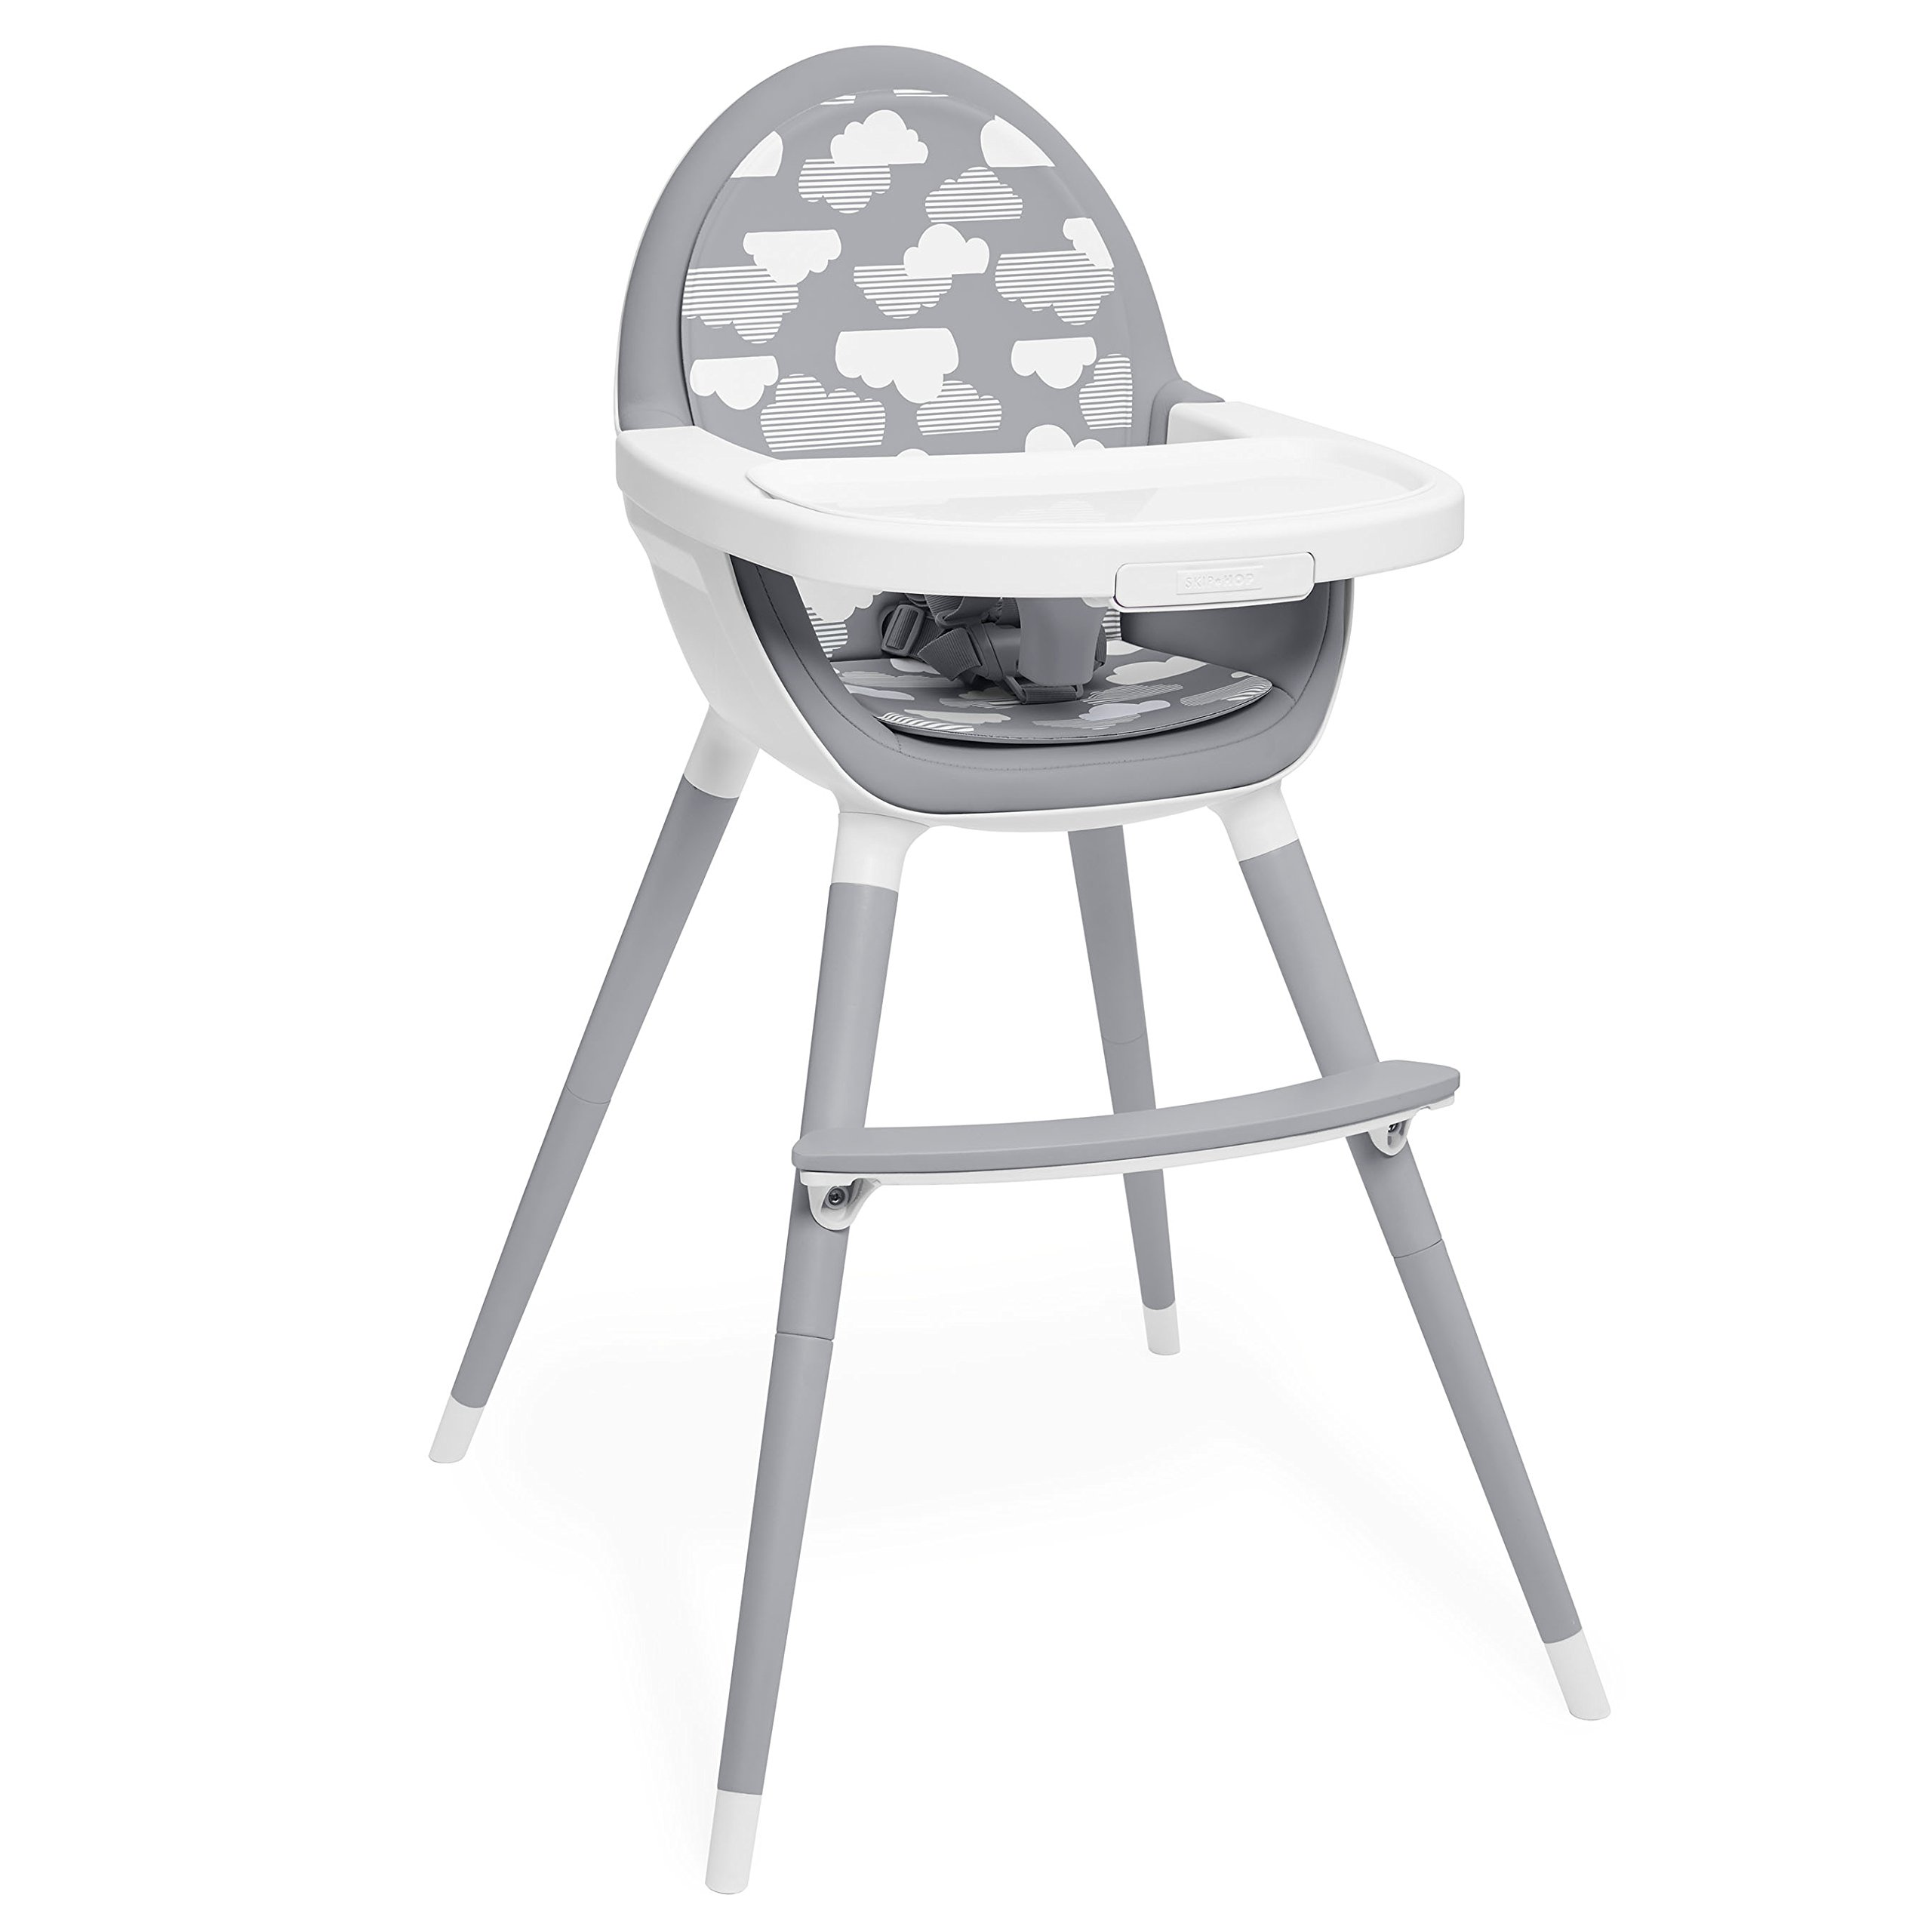 Skip Hop Tuo Convertible High Chair, Clouds